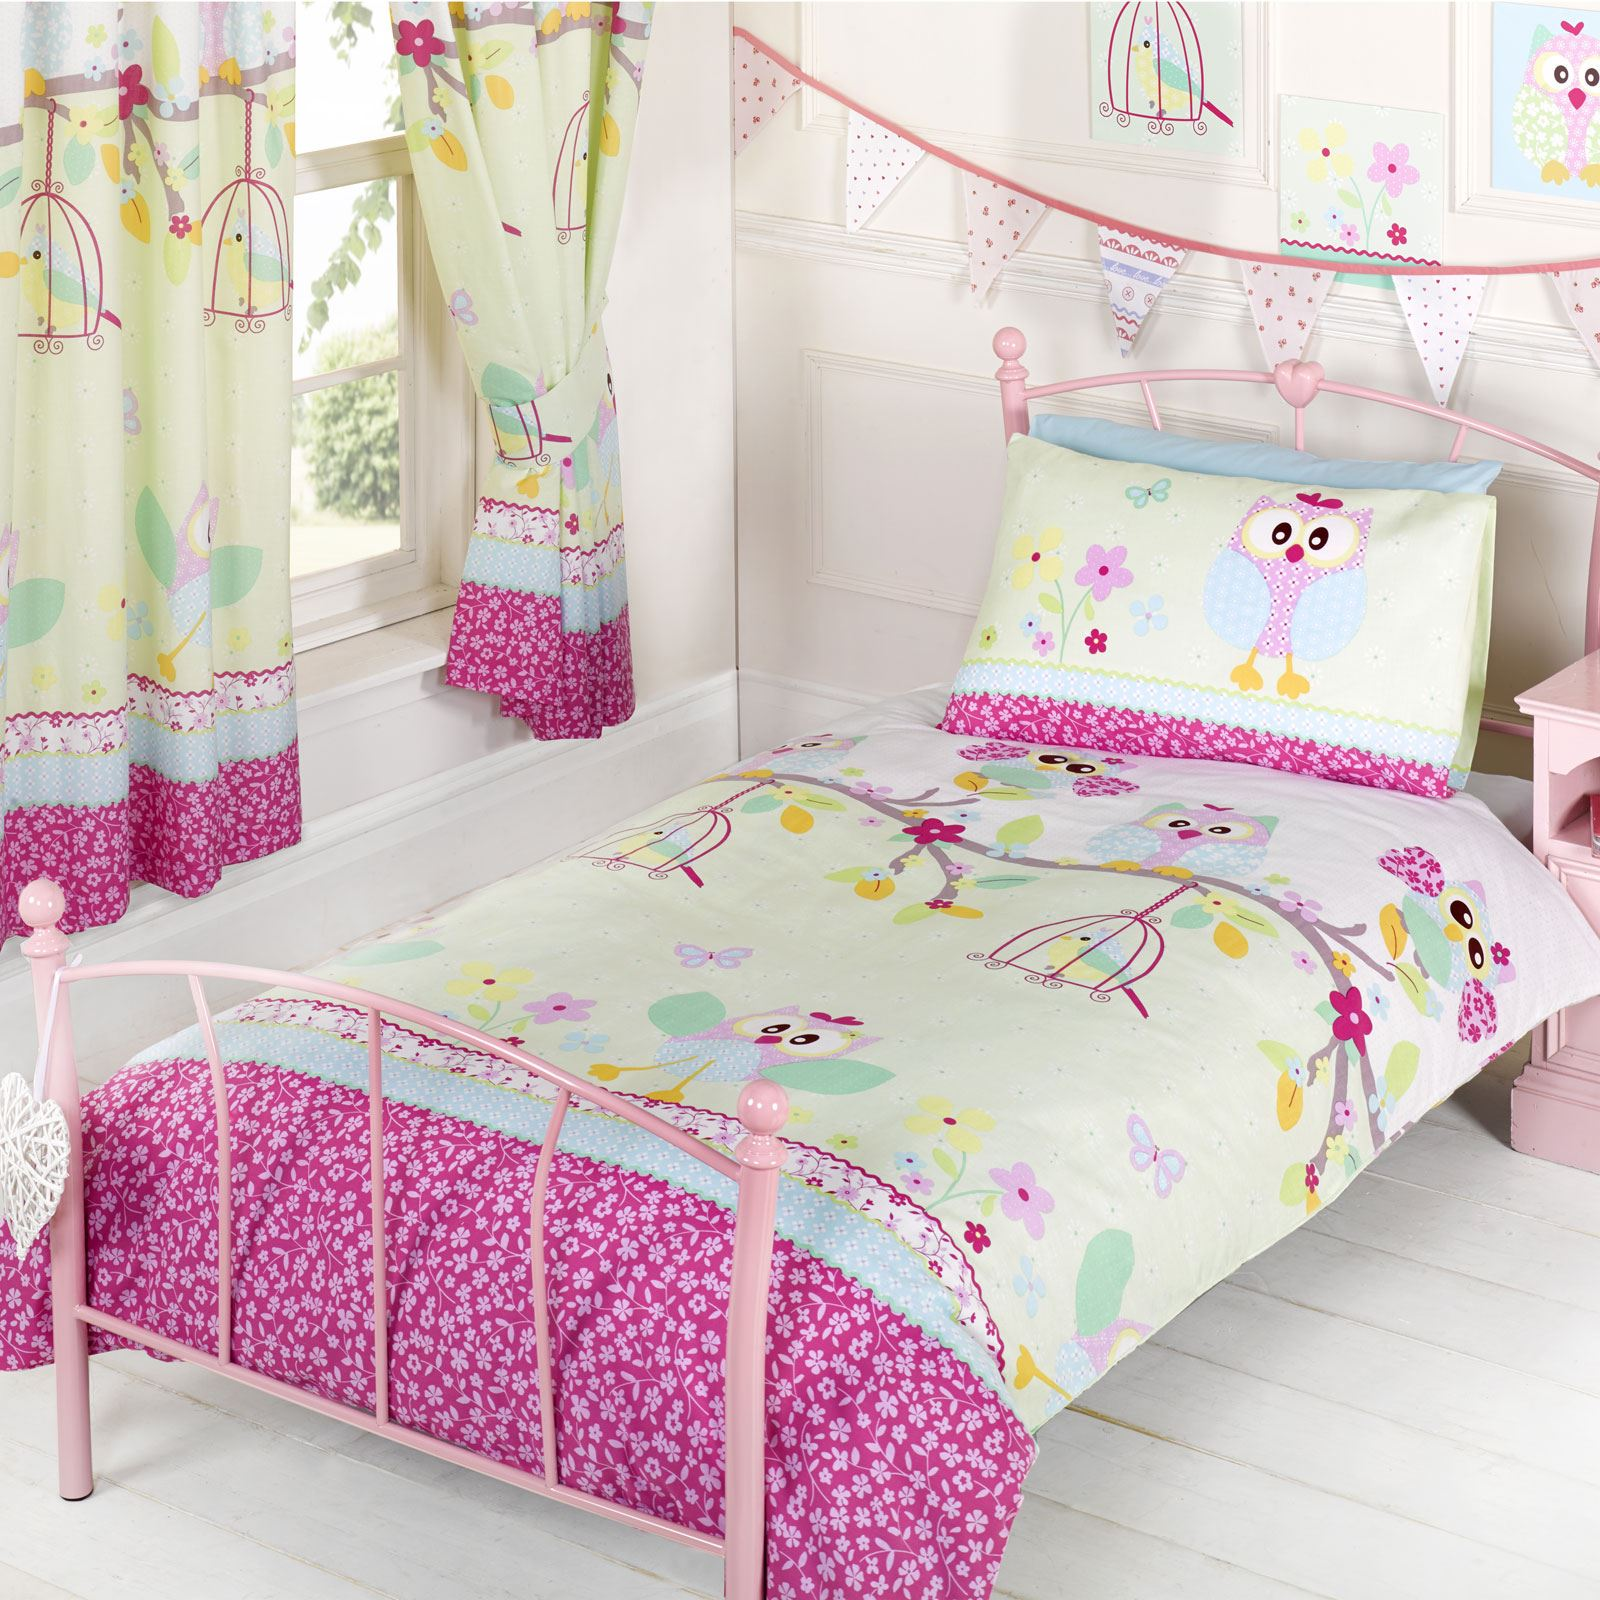 Sleigh Bedroom Sets King Bedroom Jpg Simple Bedroom Colour Design Bedroom Accessories Uk: OWLS 'TWIT TWOO' SINGLE DUVET COVER SET NEW GIRLS BEDDING